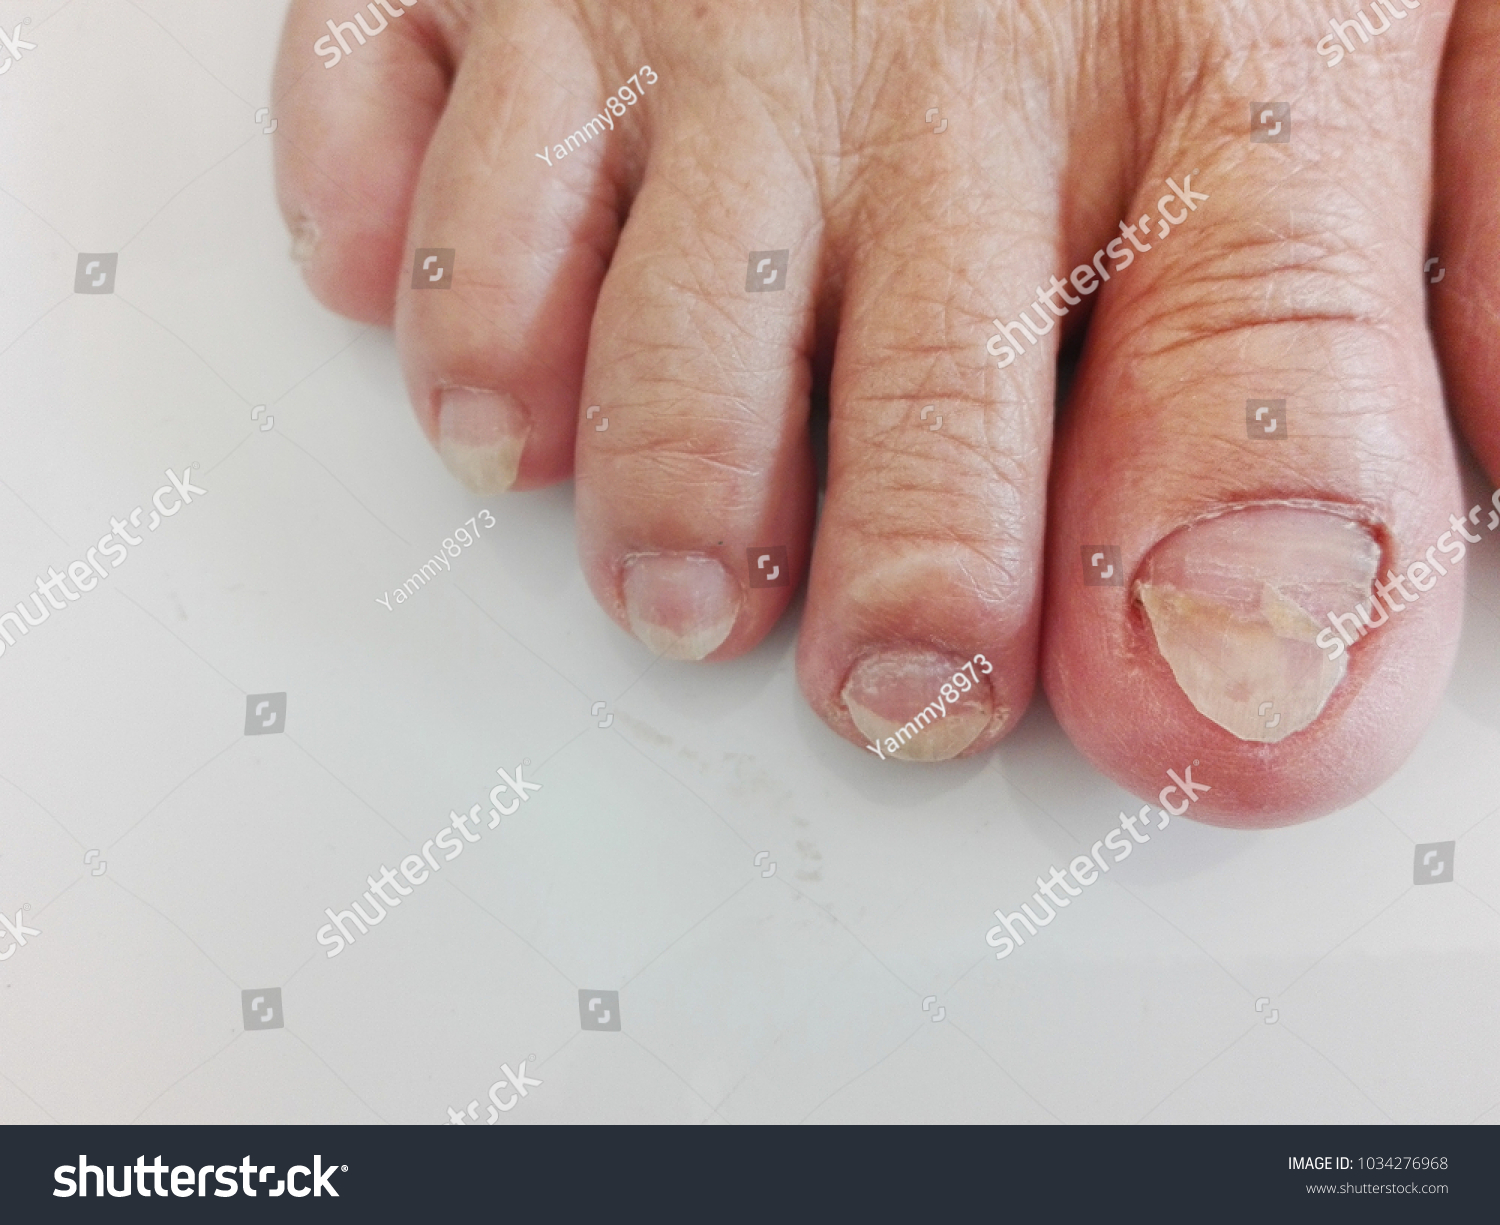 Skin Wrinkles Wrinkles By Age Dirty Nails Stock Photo (Edit Now ...